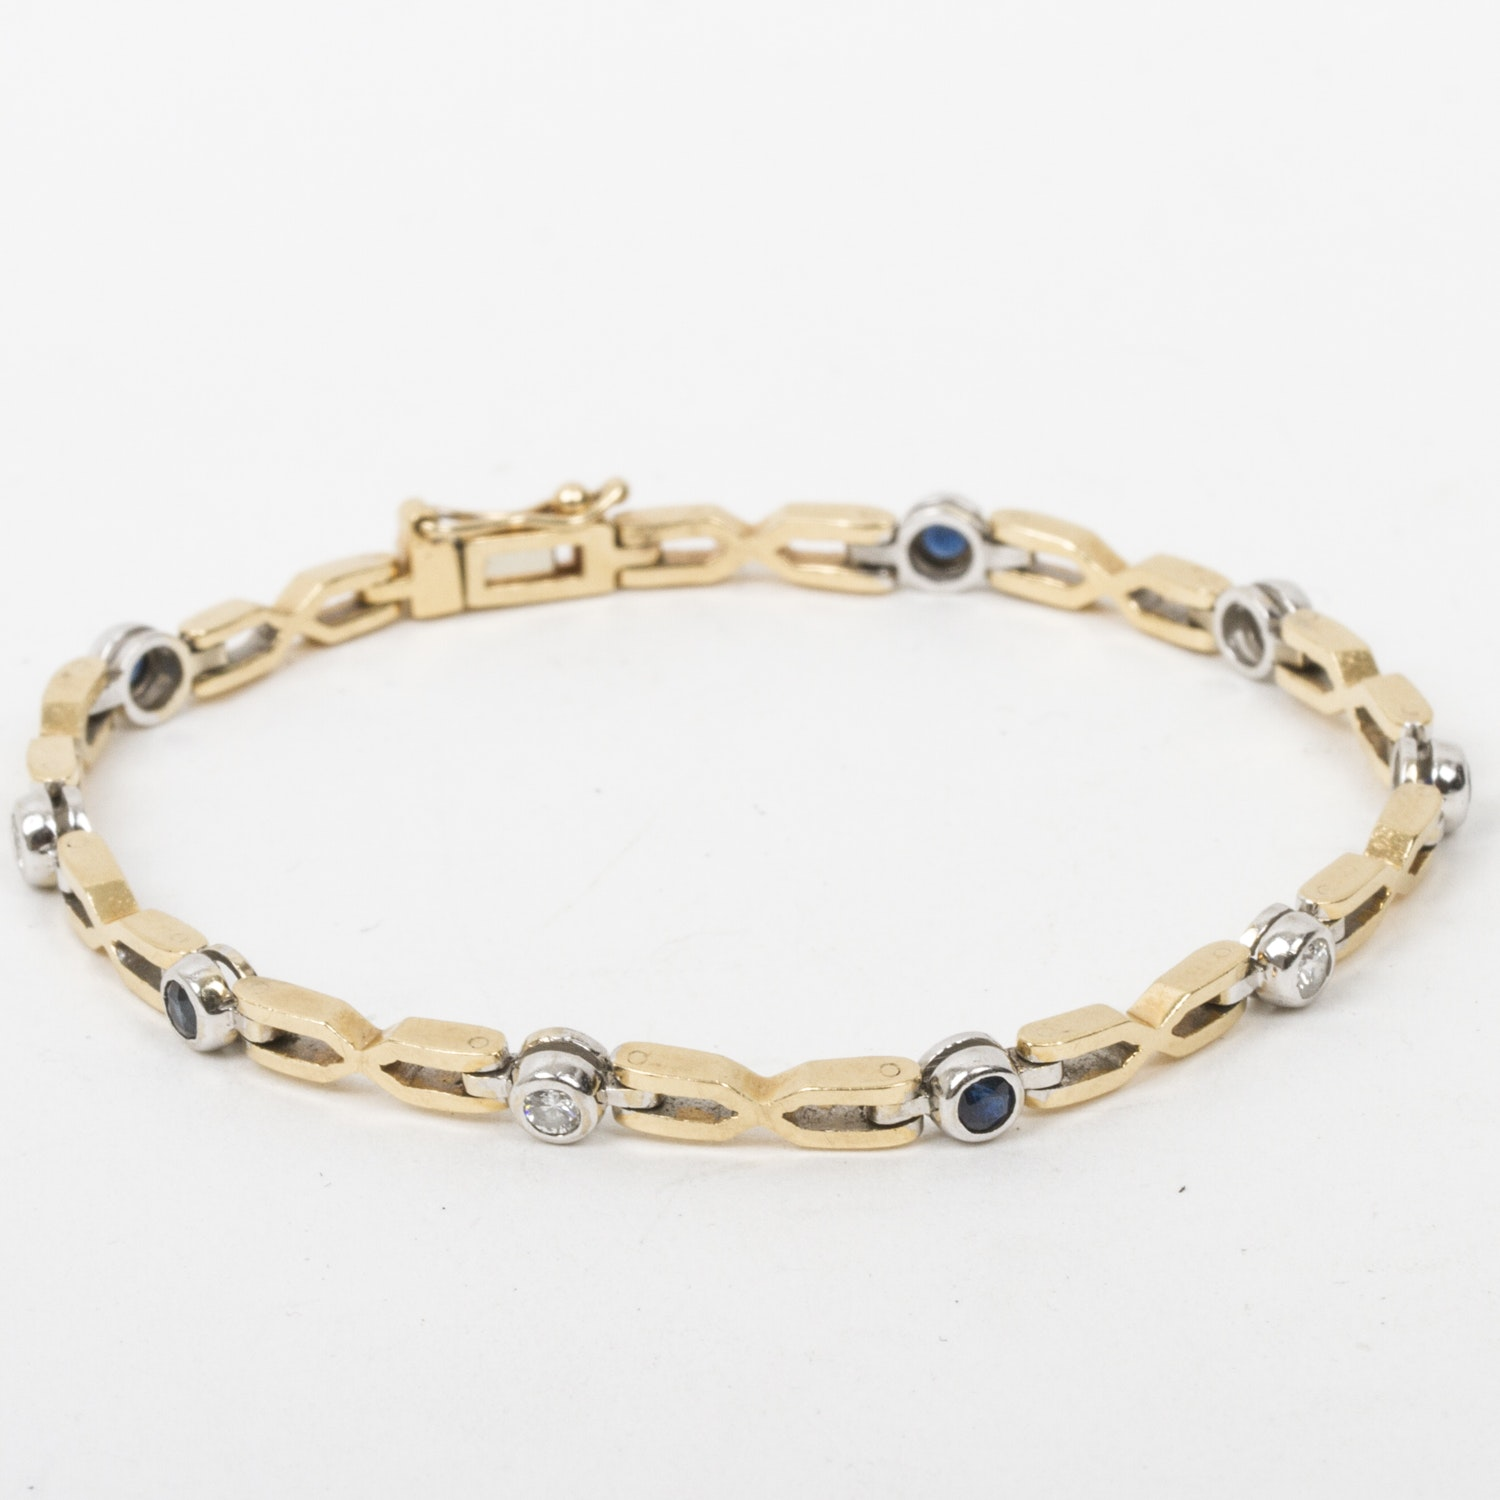 18K Two-Tone Gold, Diamond, and Sapphire Link Bracelet